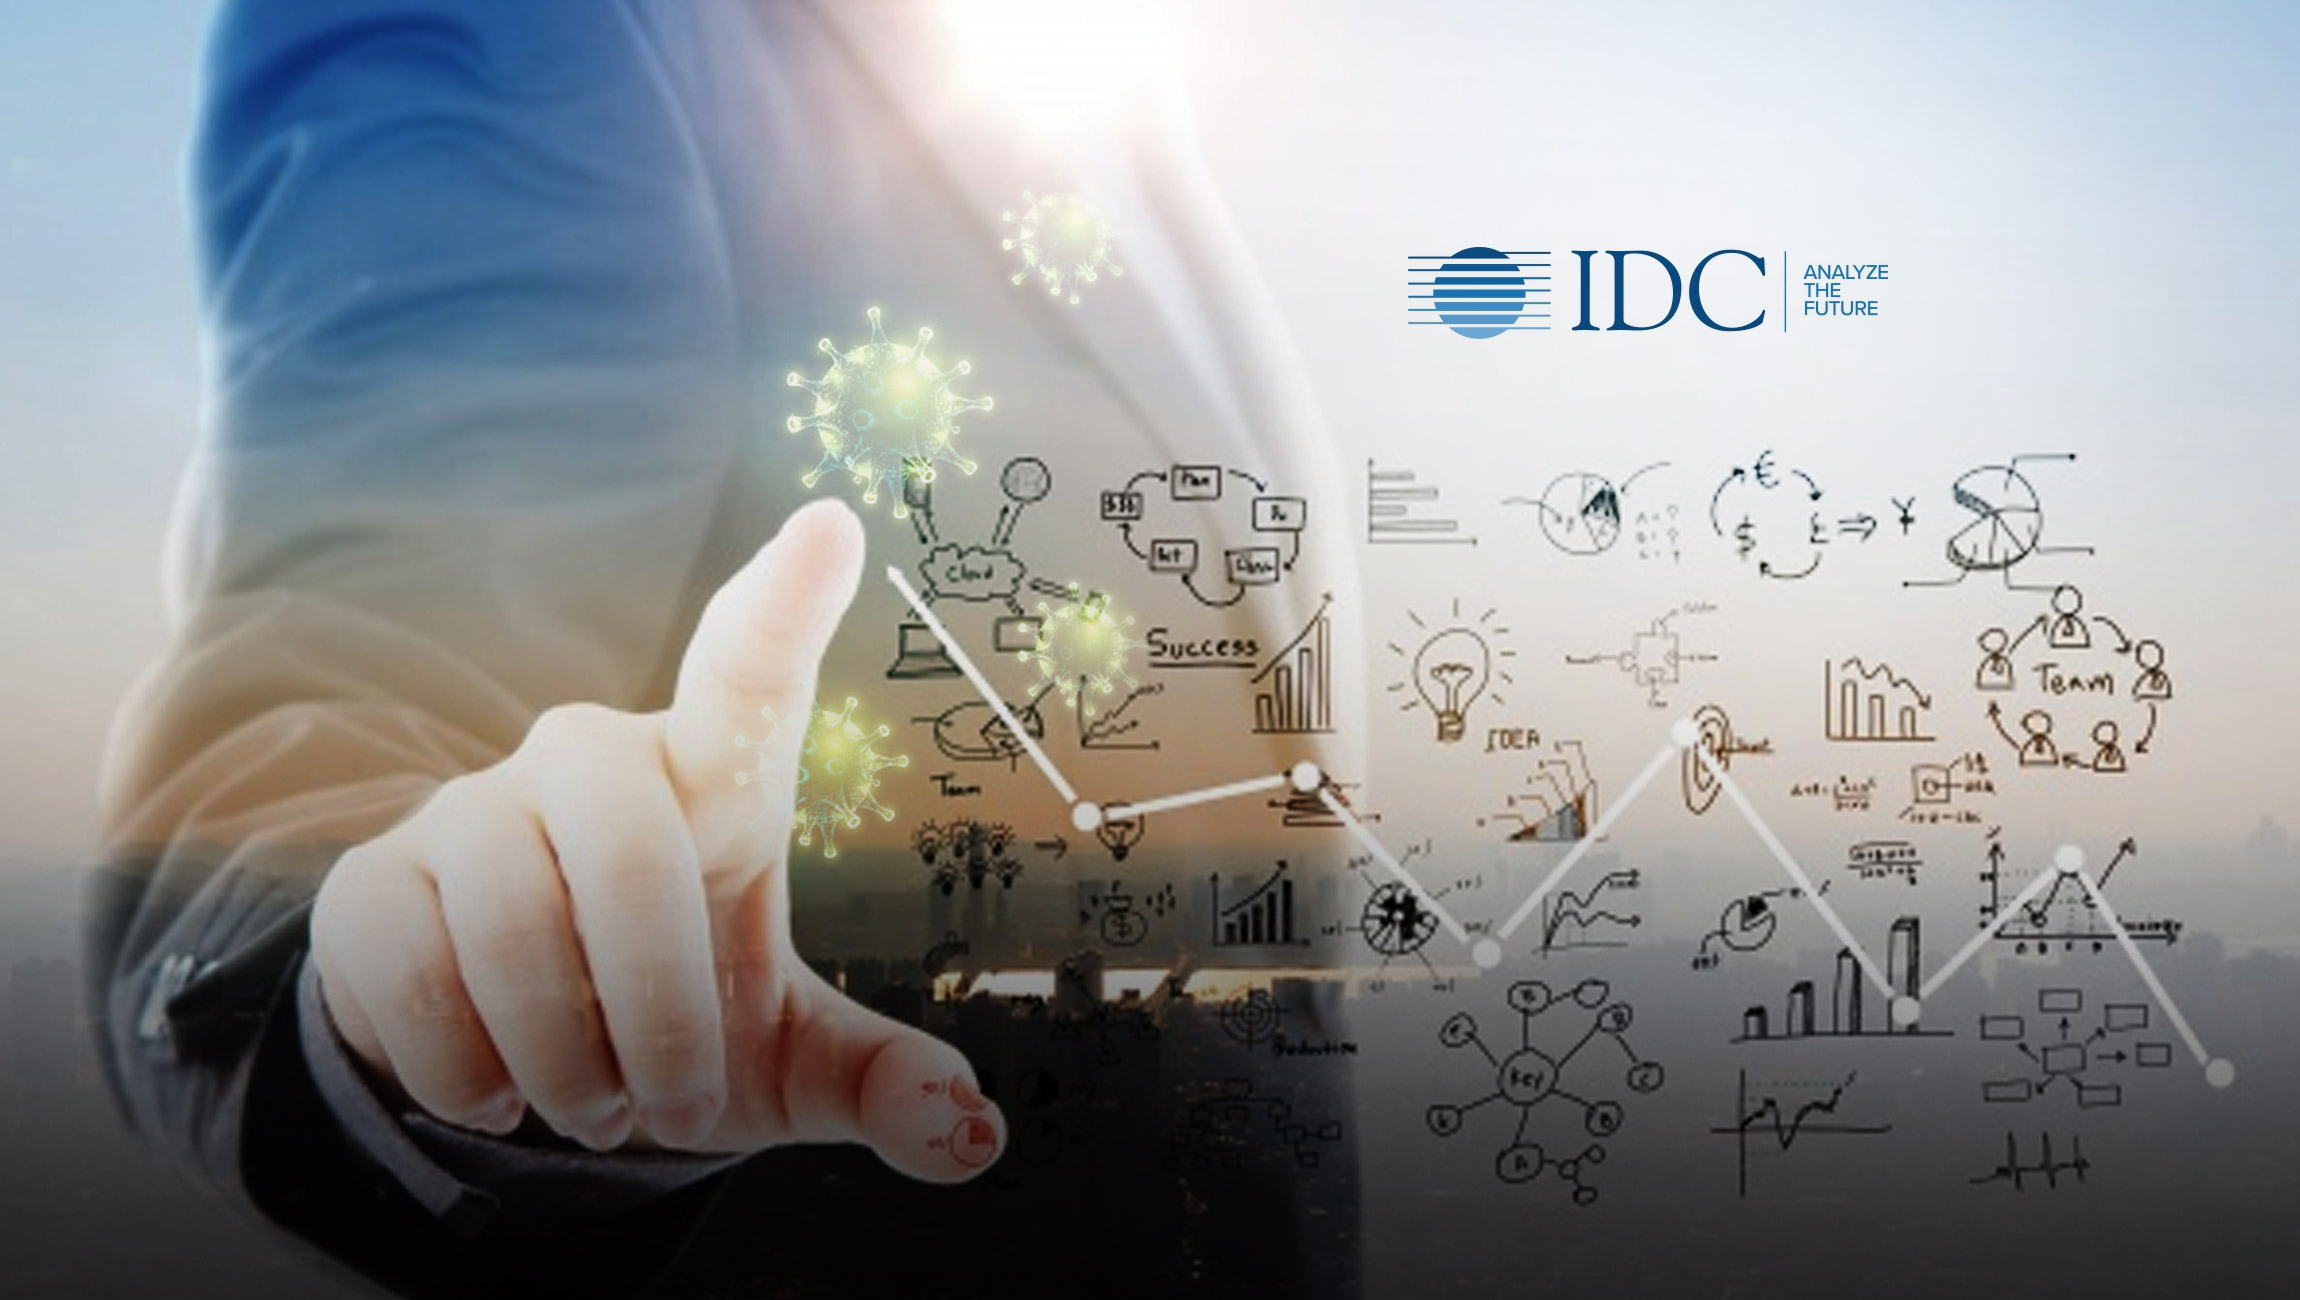 IT Spending Indicators May Be Bottoming Out for Now but US Business Confidence Continues to Plunge, According to IDC COVID-19 Tech Index